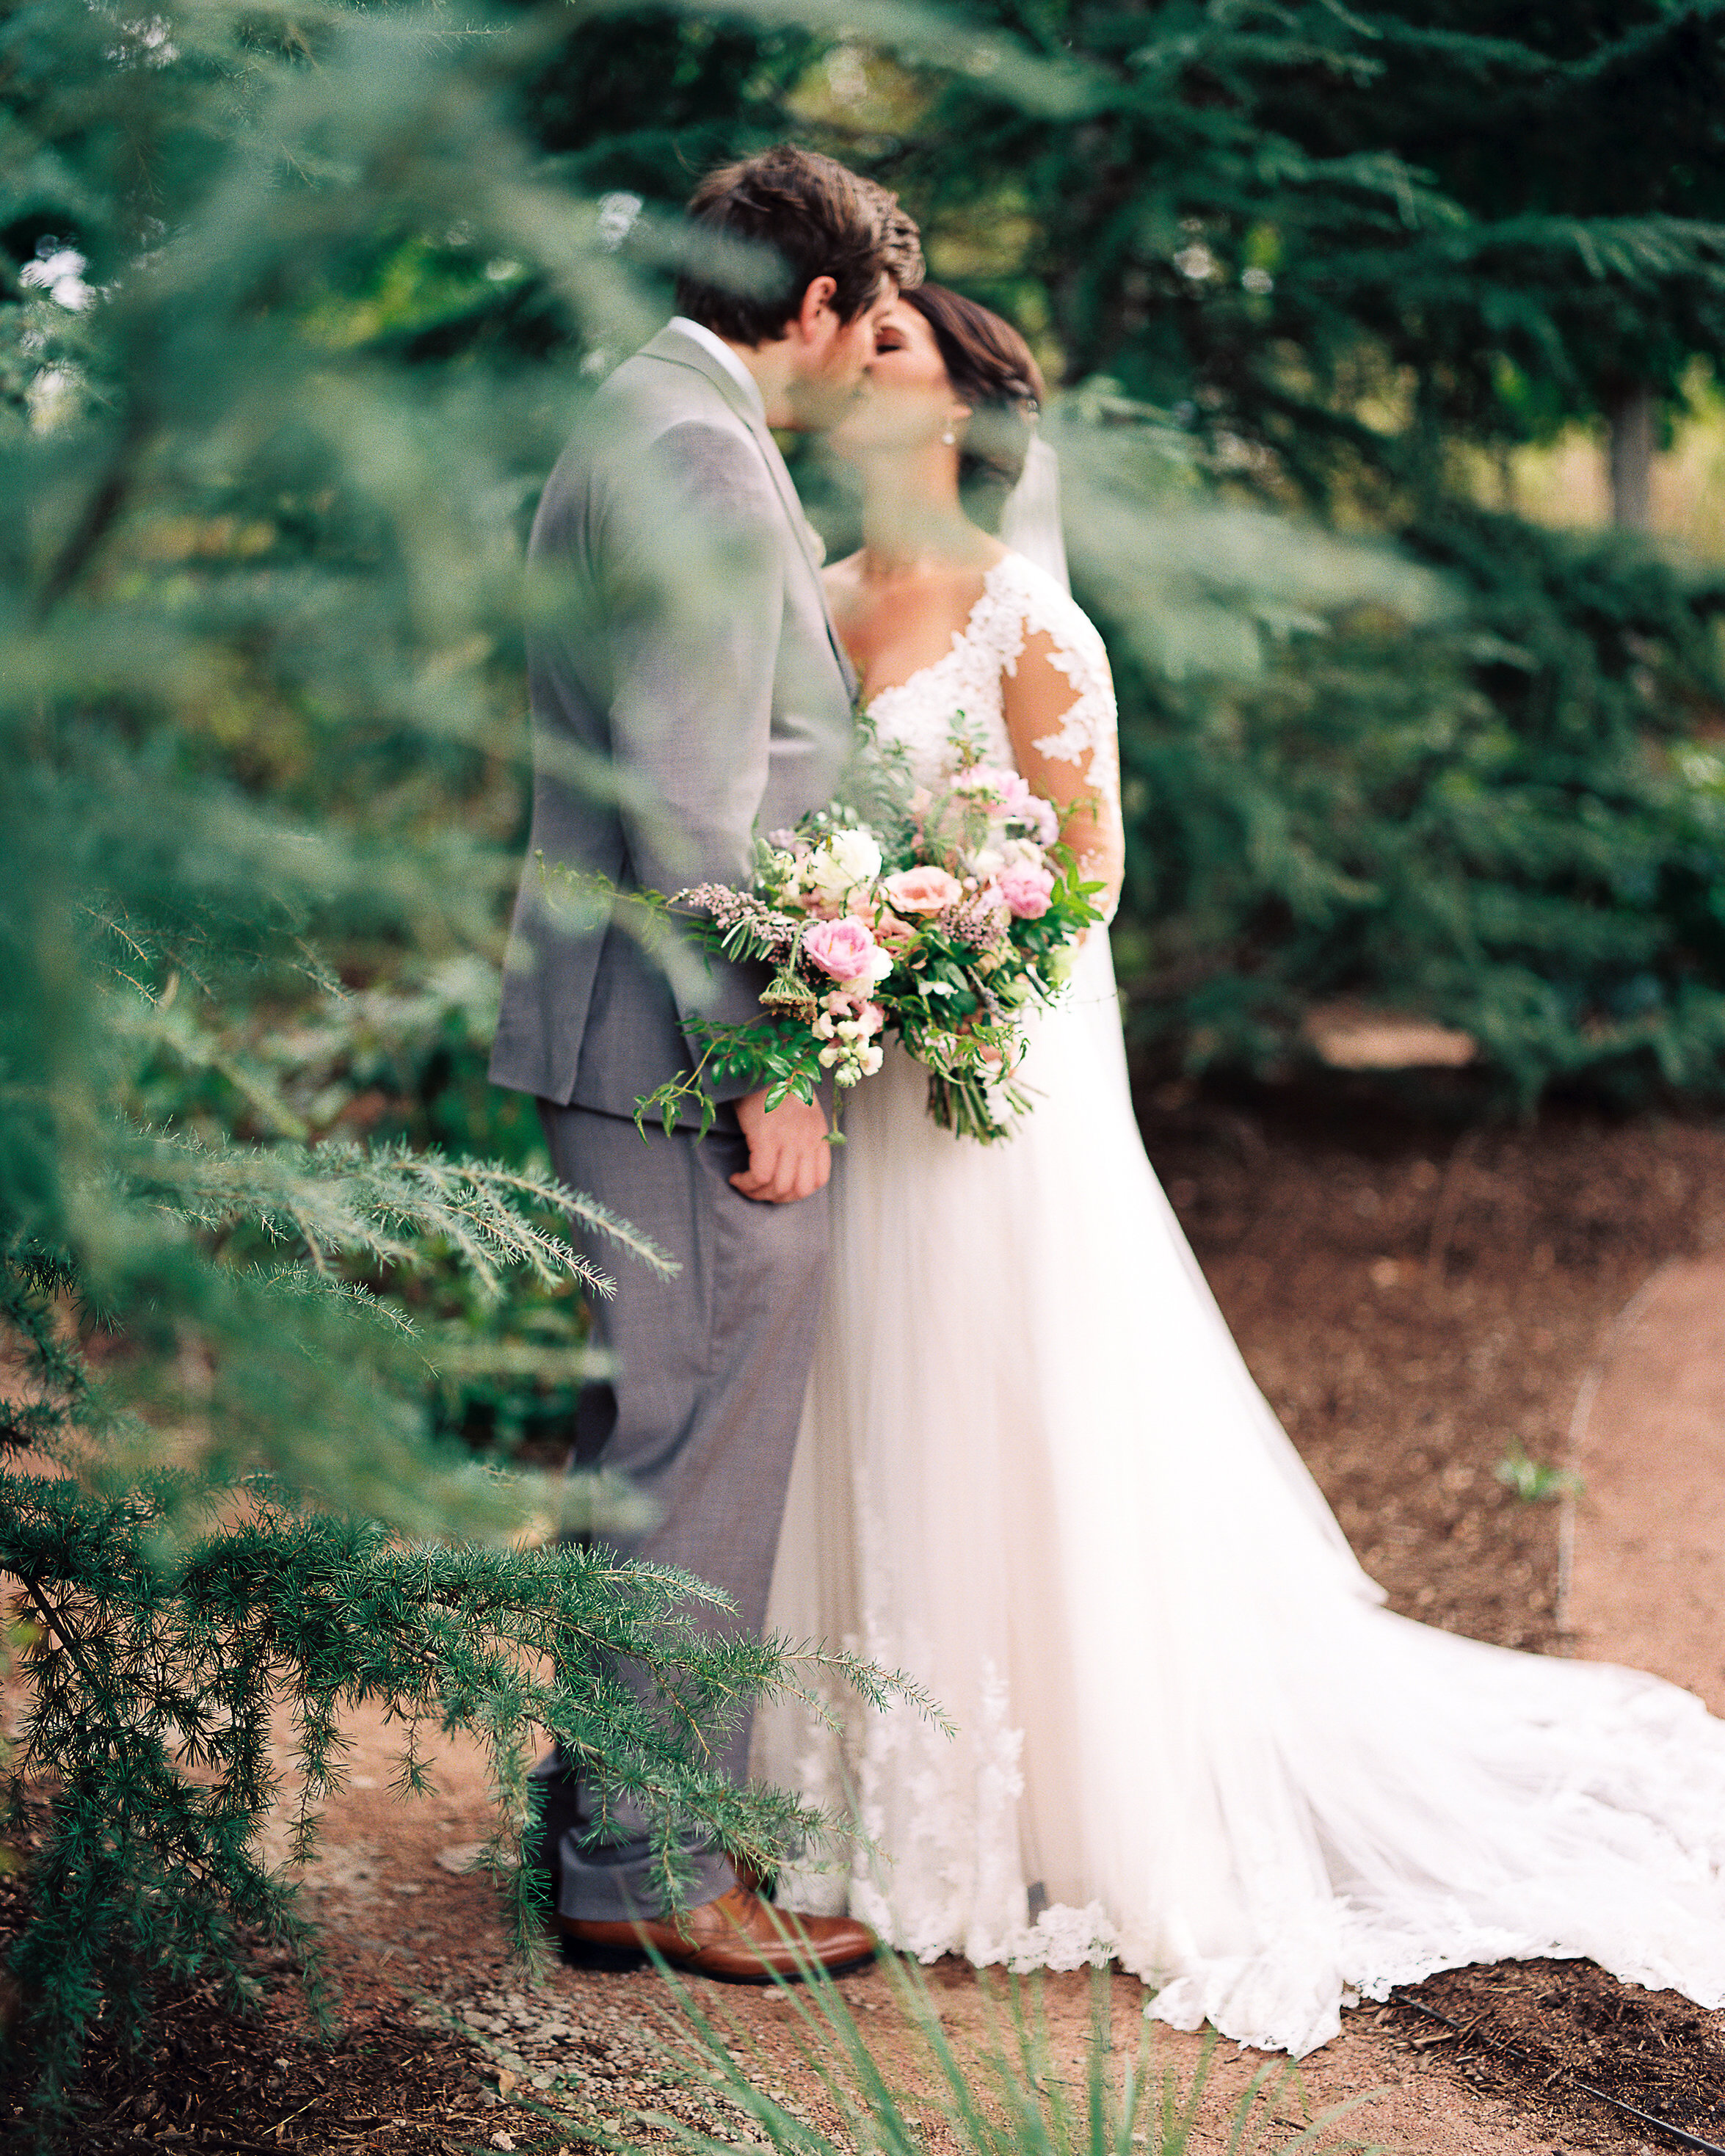 ratcliff_wedding-1050 Emily & Marcus: A Cozy Nashville Wedding Blog Invision Events Weddings    invision_events, birmingham_al, auburn_al, alabama, atlanta_ga, atl, georgia, wedding_planner, wedding_designer, weddings, photography, wedding_planning